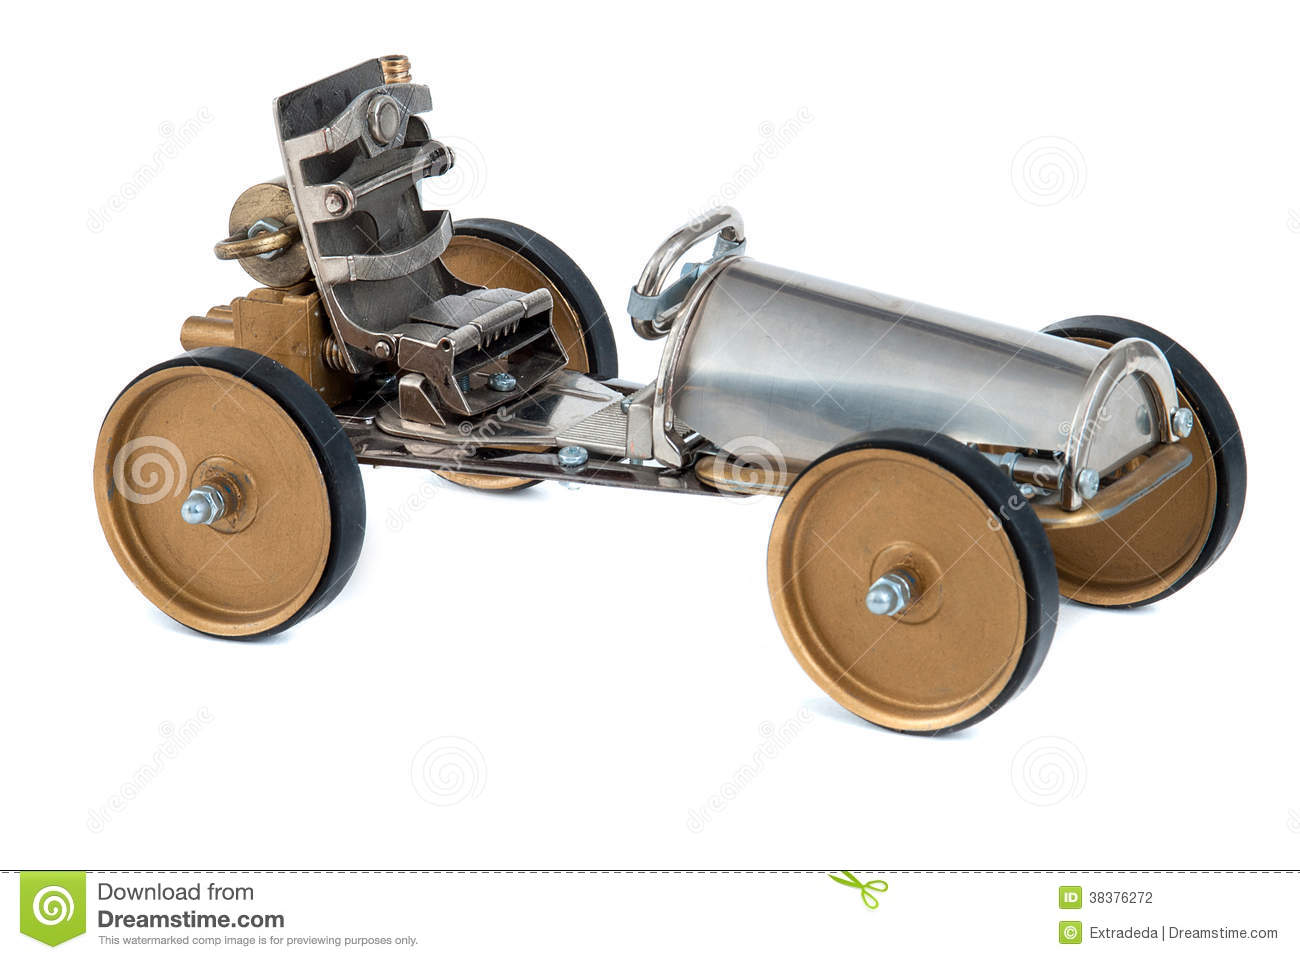 655 Steampunk Vehicle Photos Free Royalty Free Stock Photos From Dreamstime